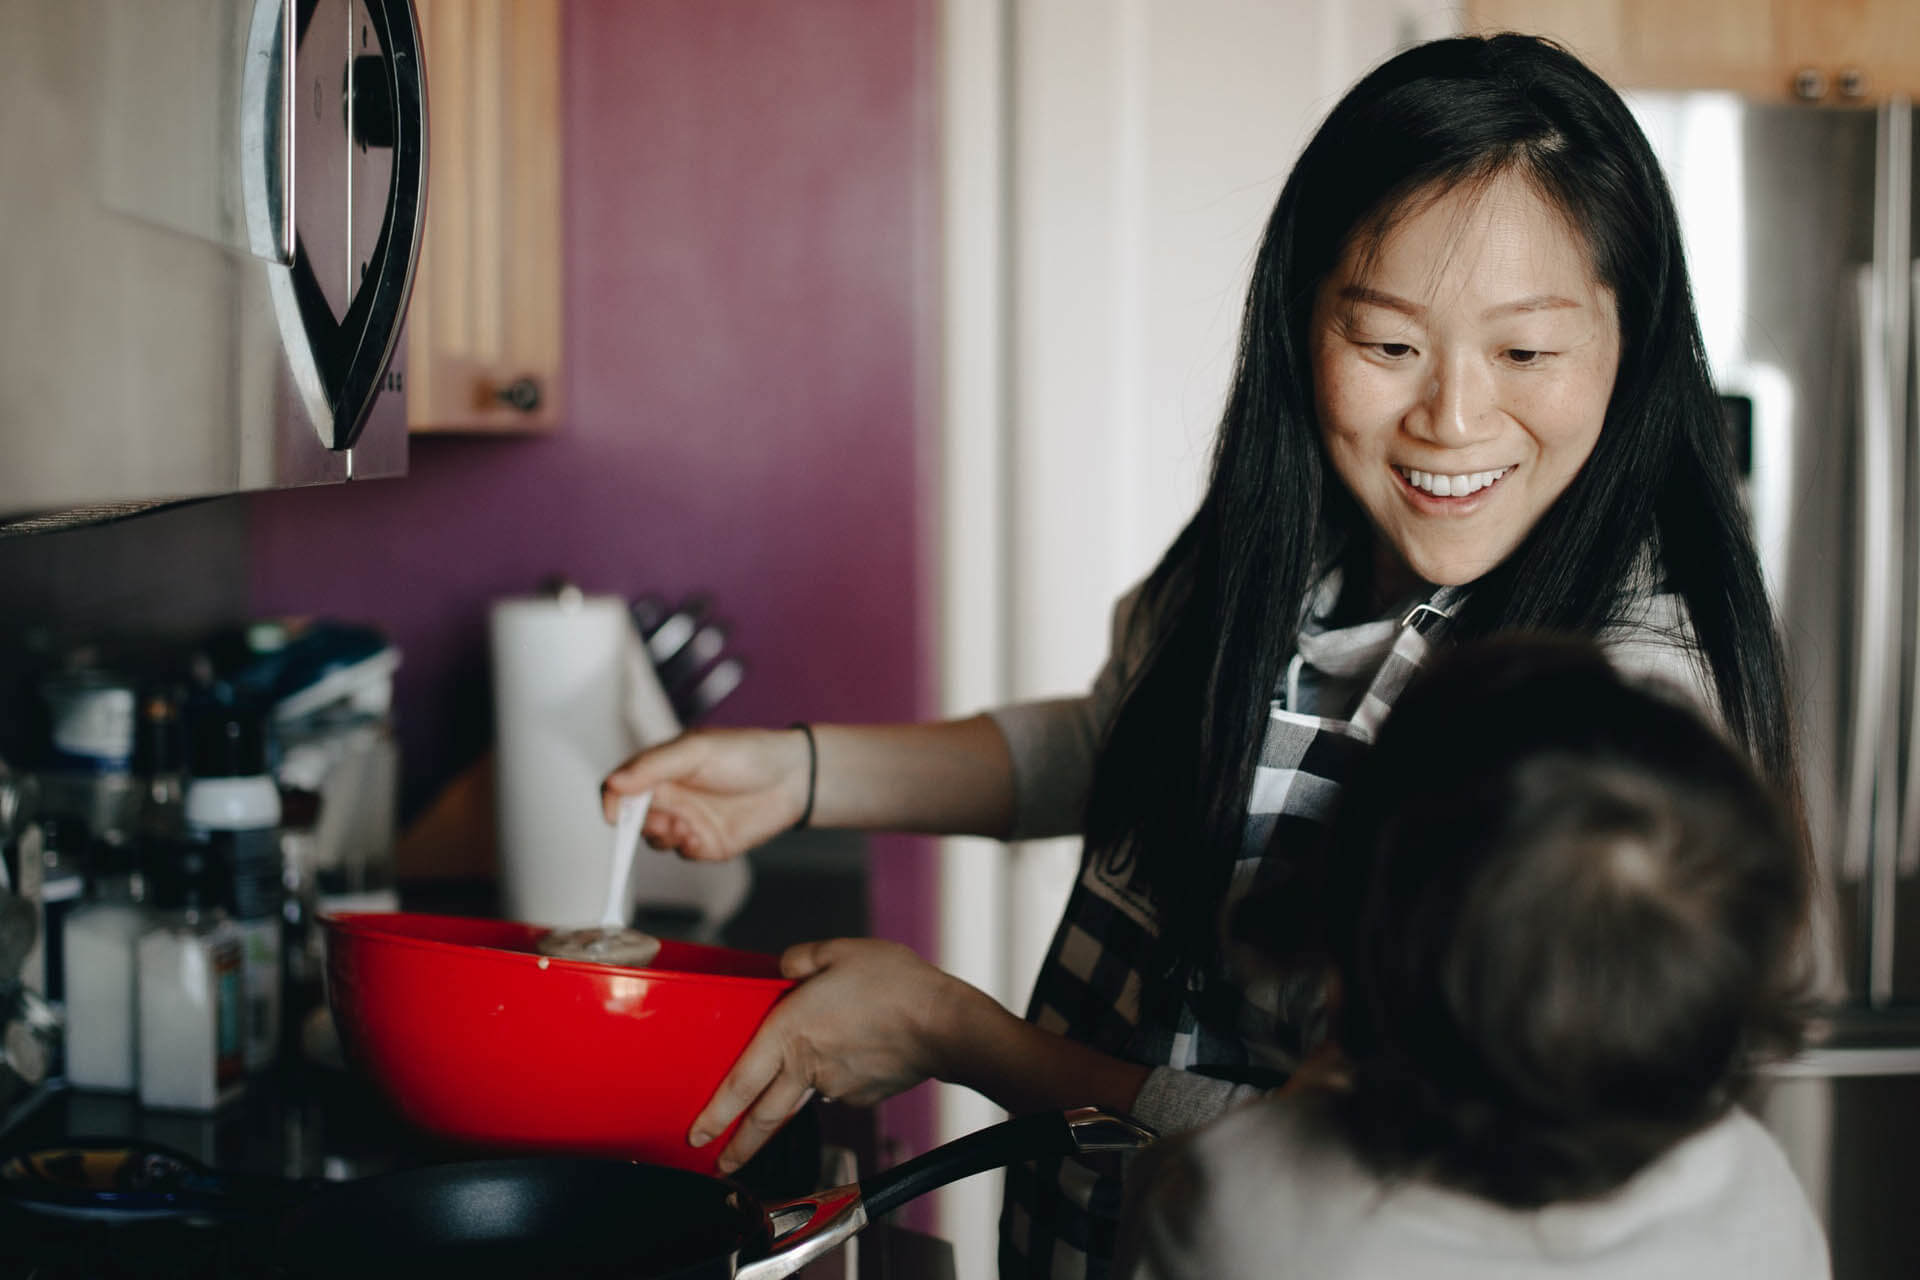 woman in kitchen performing unpaid labour.